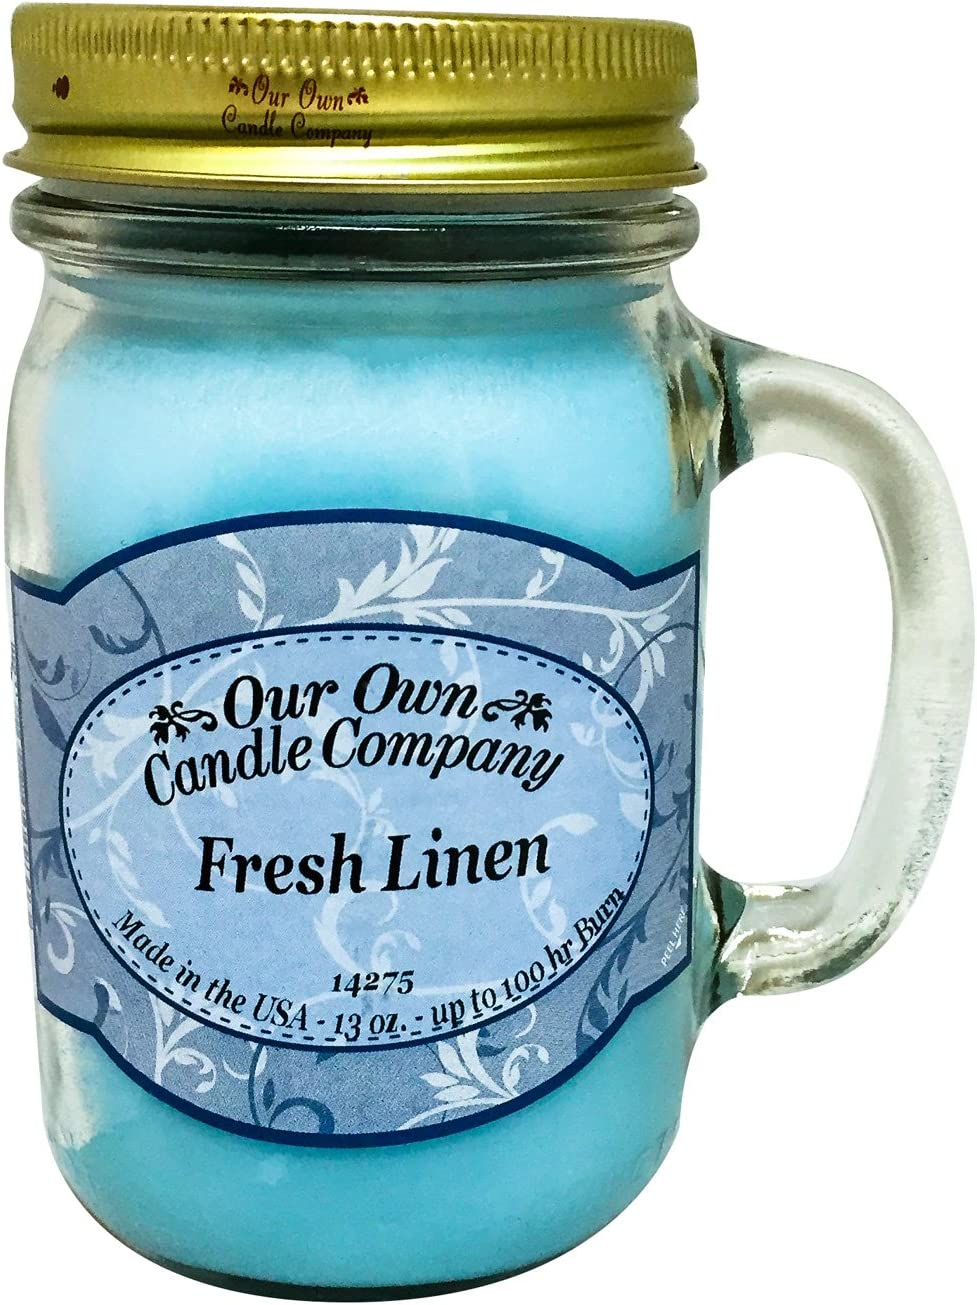 Our Own Candle Company Fresh Linen Scented 13 Ounce Mason Jar Candle